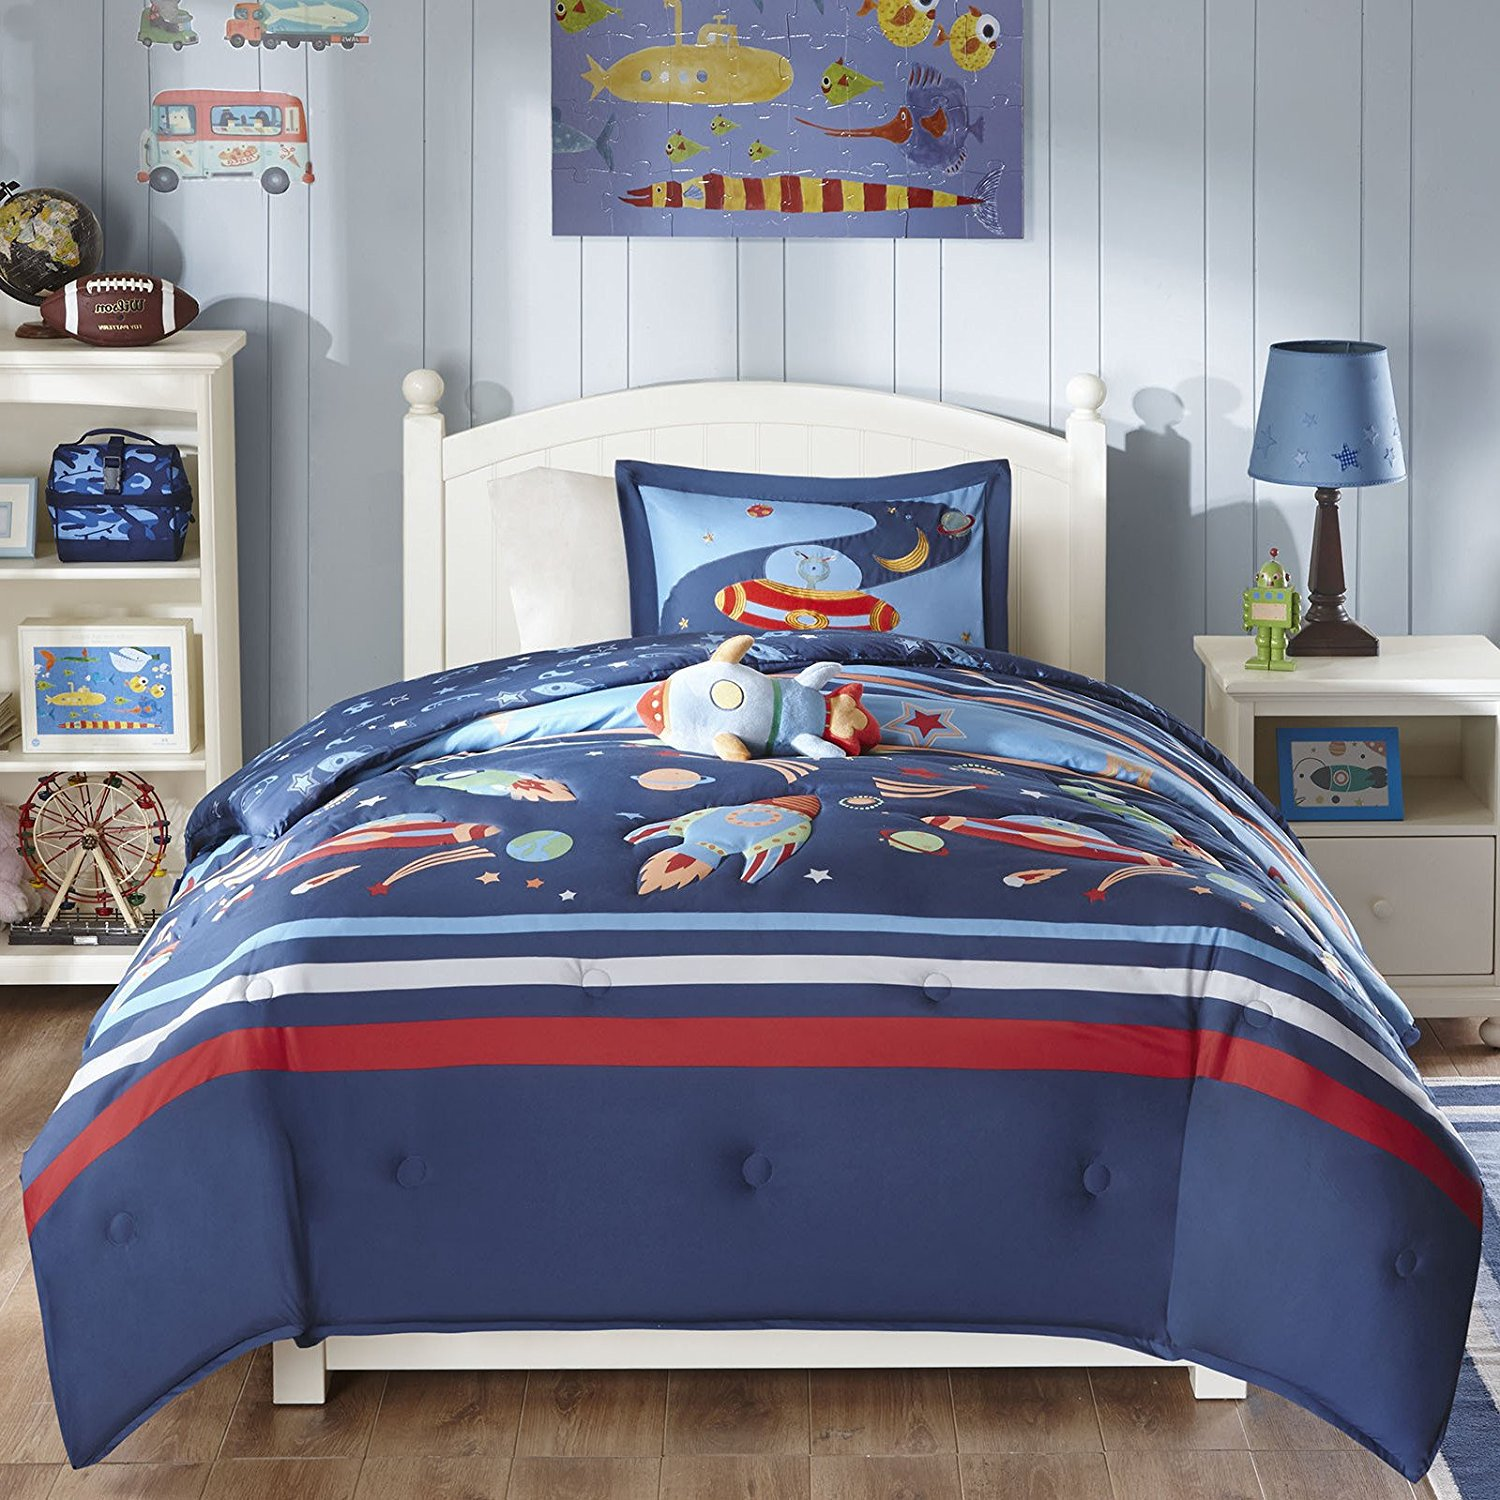 CA 3 Piece Kids Space Ranger Comforter Set Twin, Blue Red Nature Printed Outer Space Planet Rocket Stripes Teen Themed Reversible Spacestar Kids Bedding for Bedroom Modern Casual, Polyester